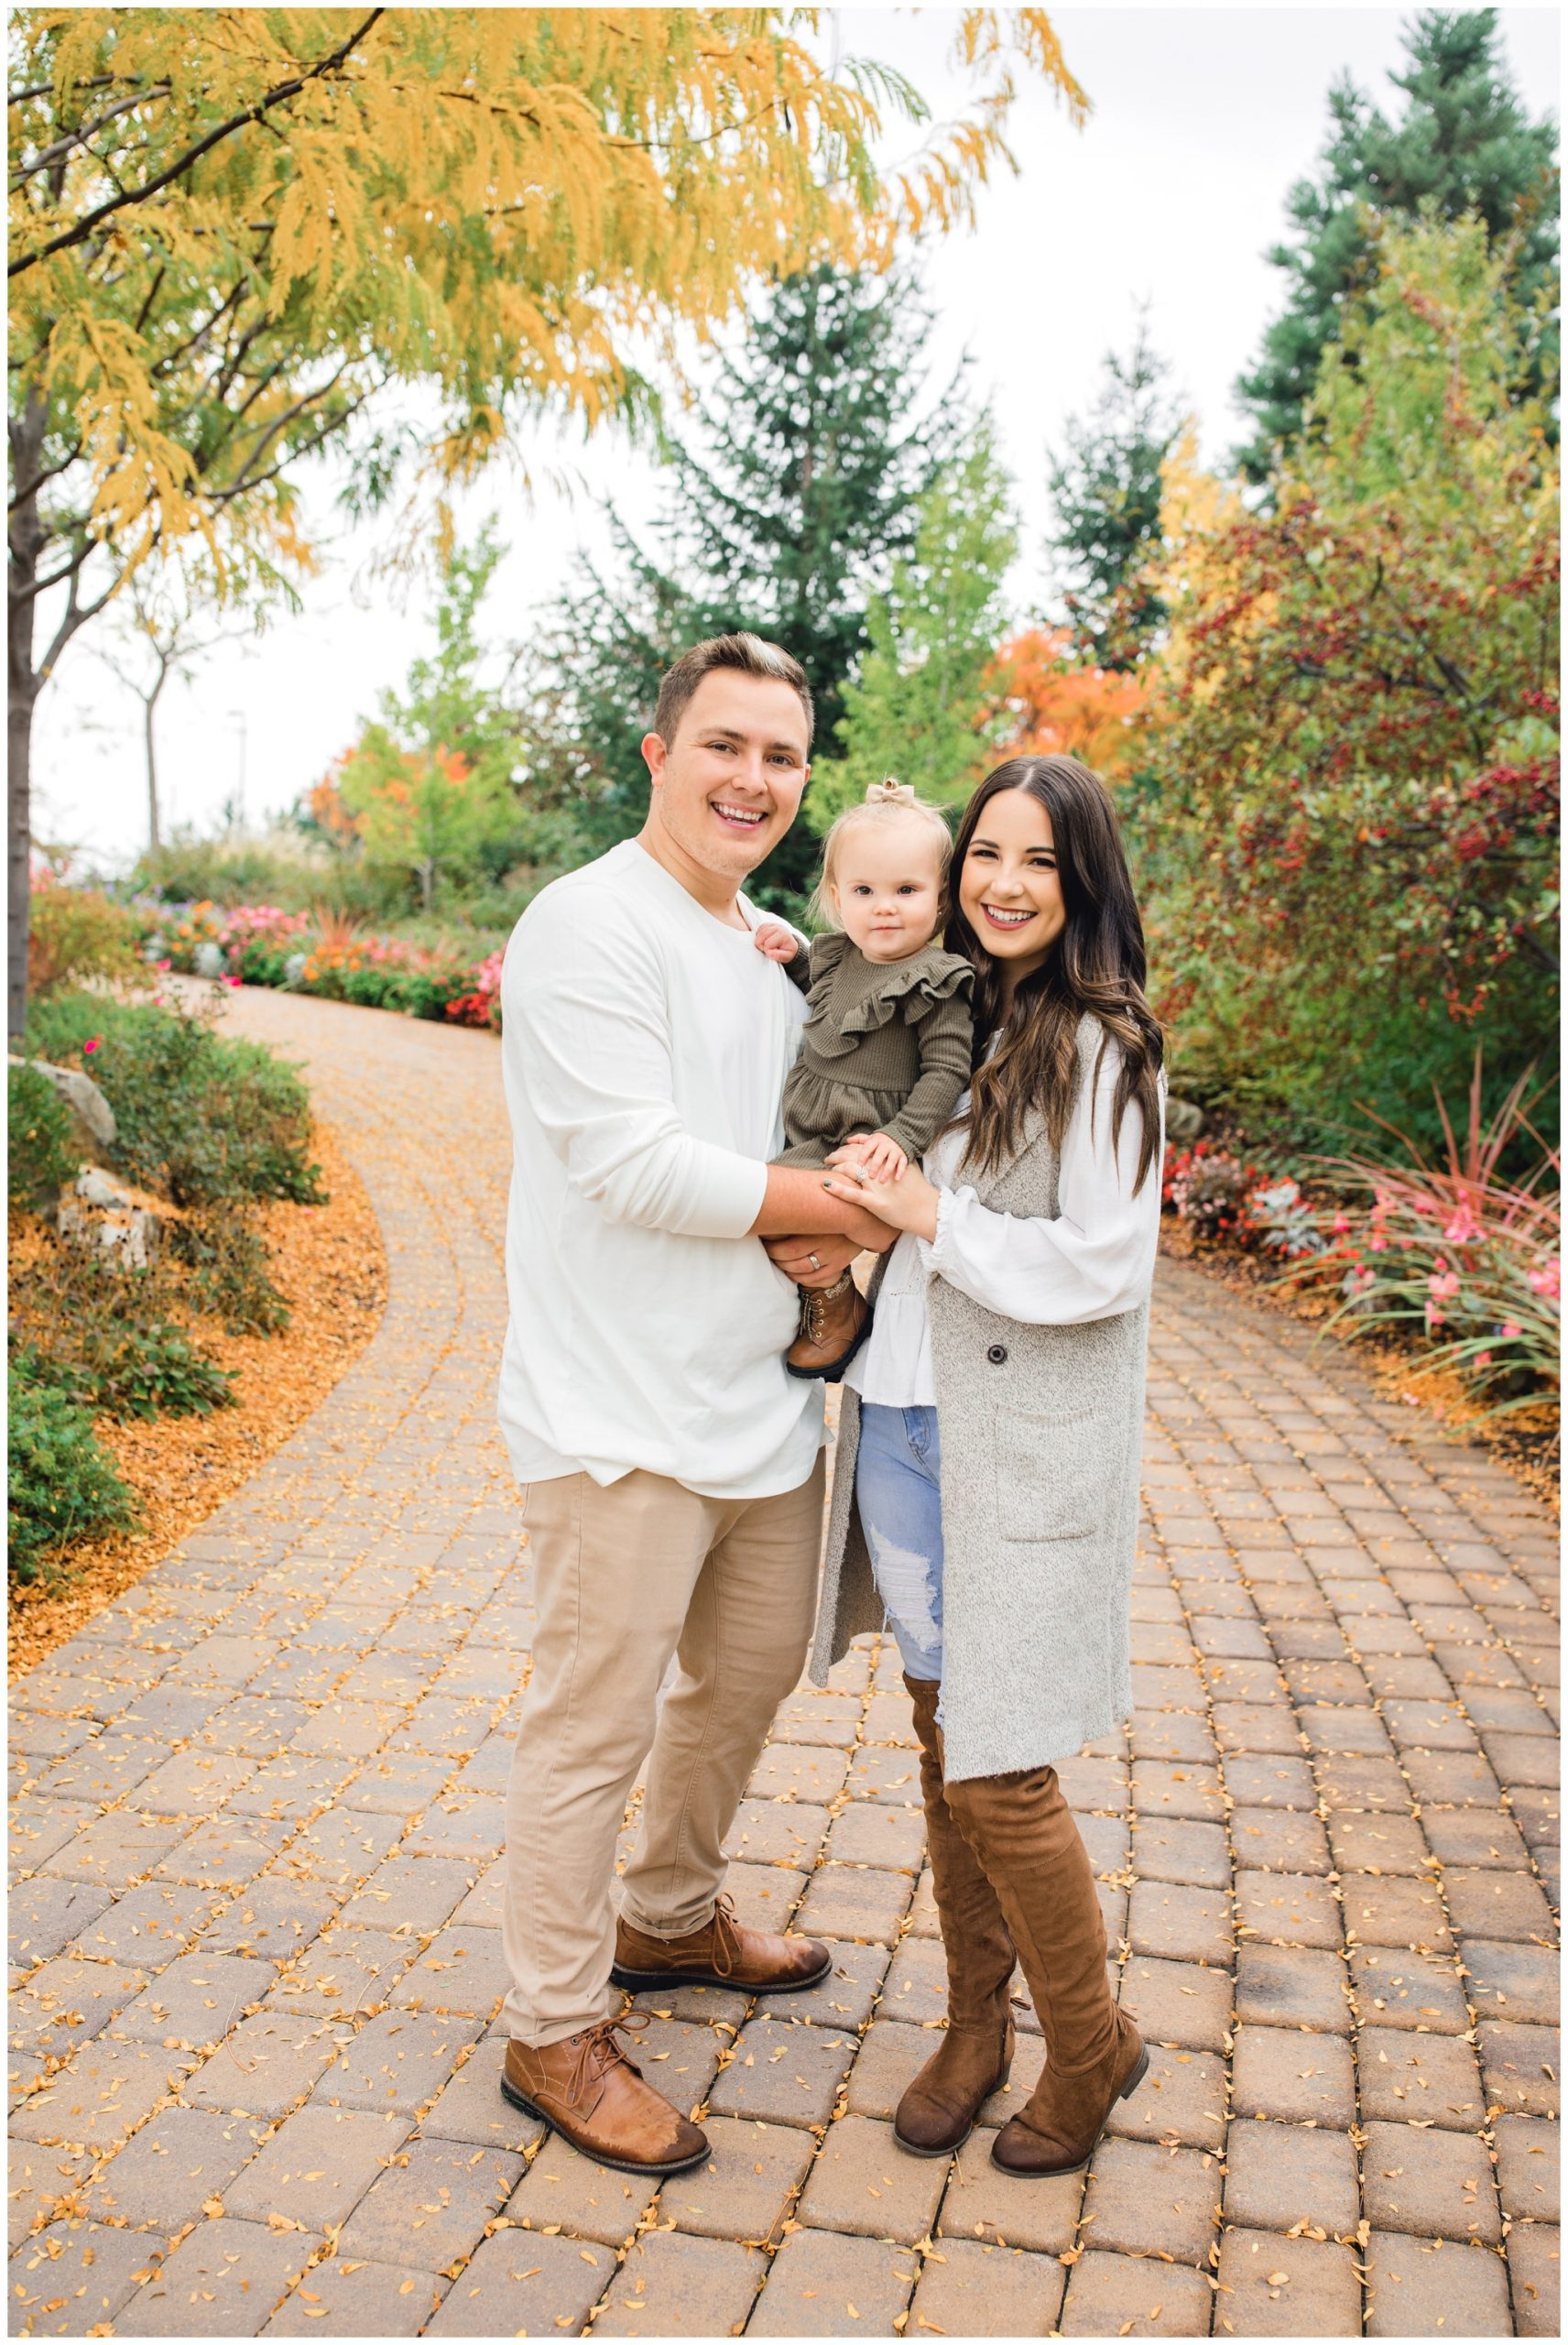 Best Fall outfits for your family session